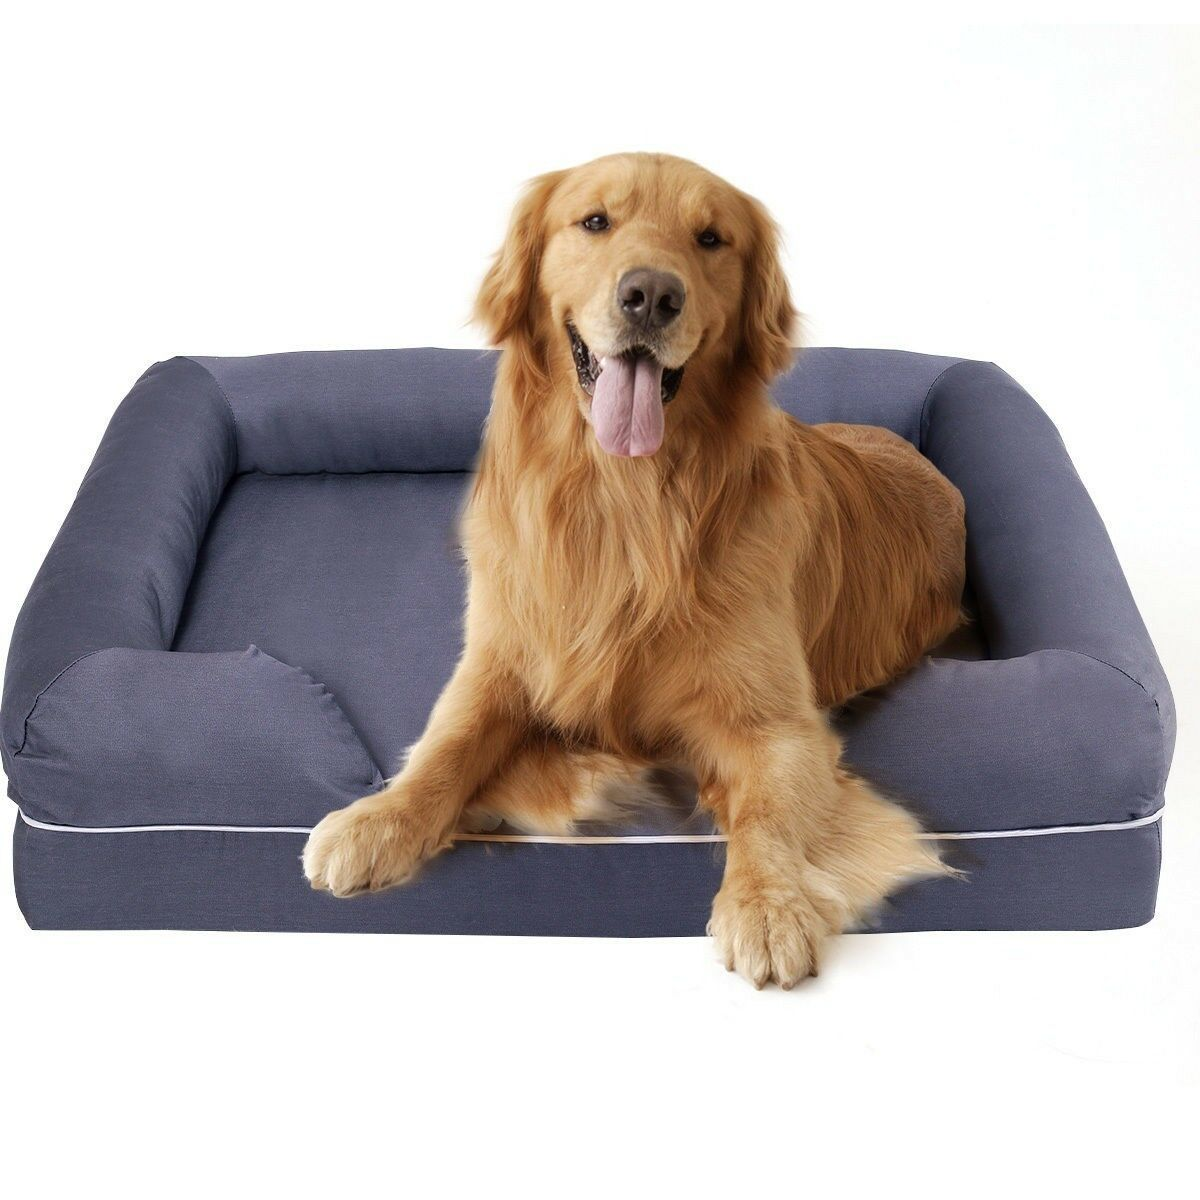 New New New Extra Large Comfortable Solid Memory Foam Pet Dog Sofa Bed Washable Cover XL 917bbb